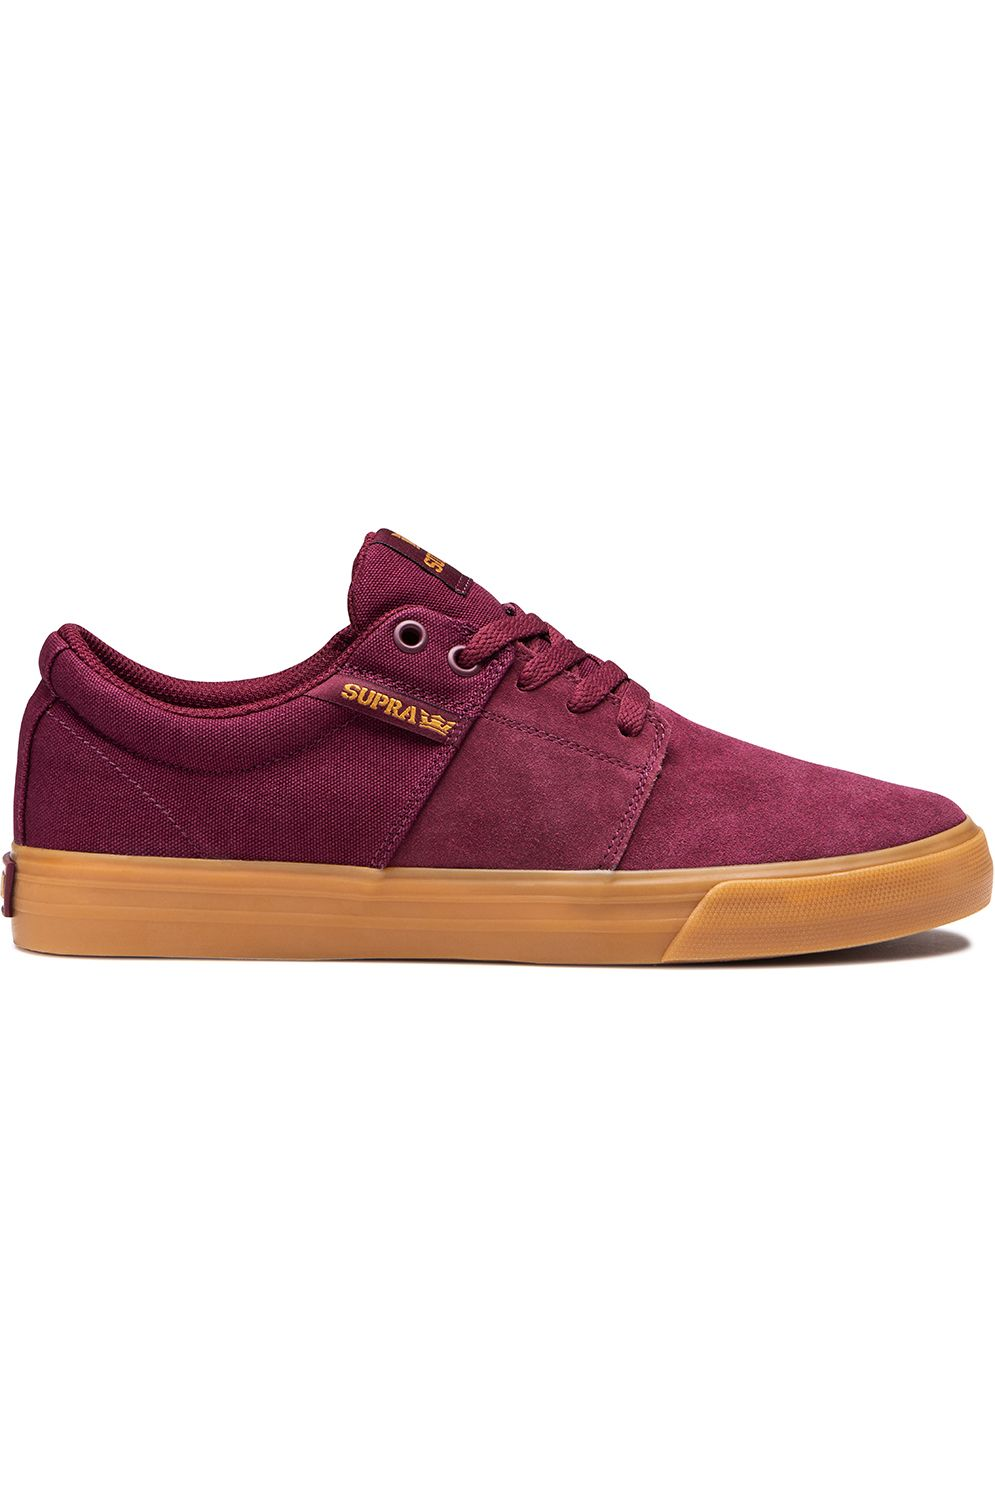 Supra Shoes STACKS VULC II Wine/Tan/Lt Gum